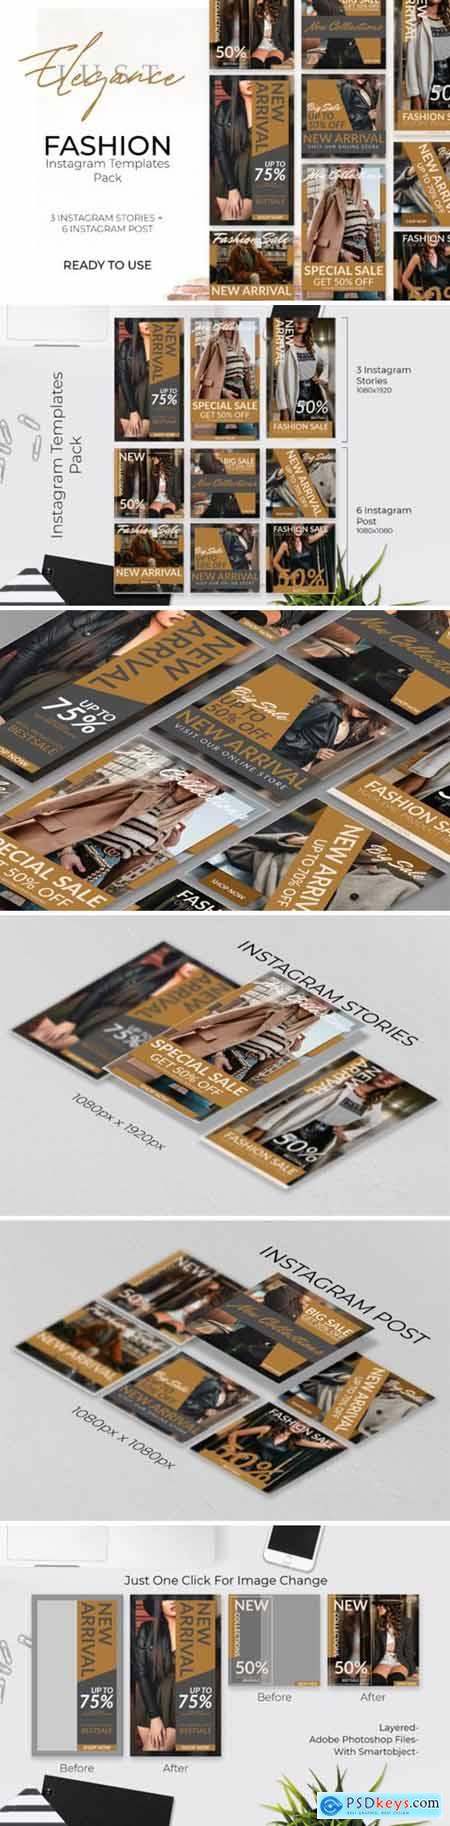 Instagram Post & Stories Template Pack 1684626